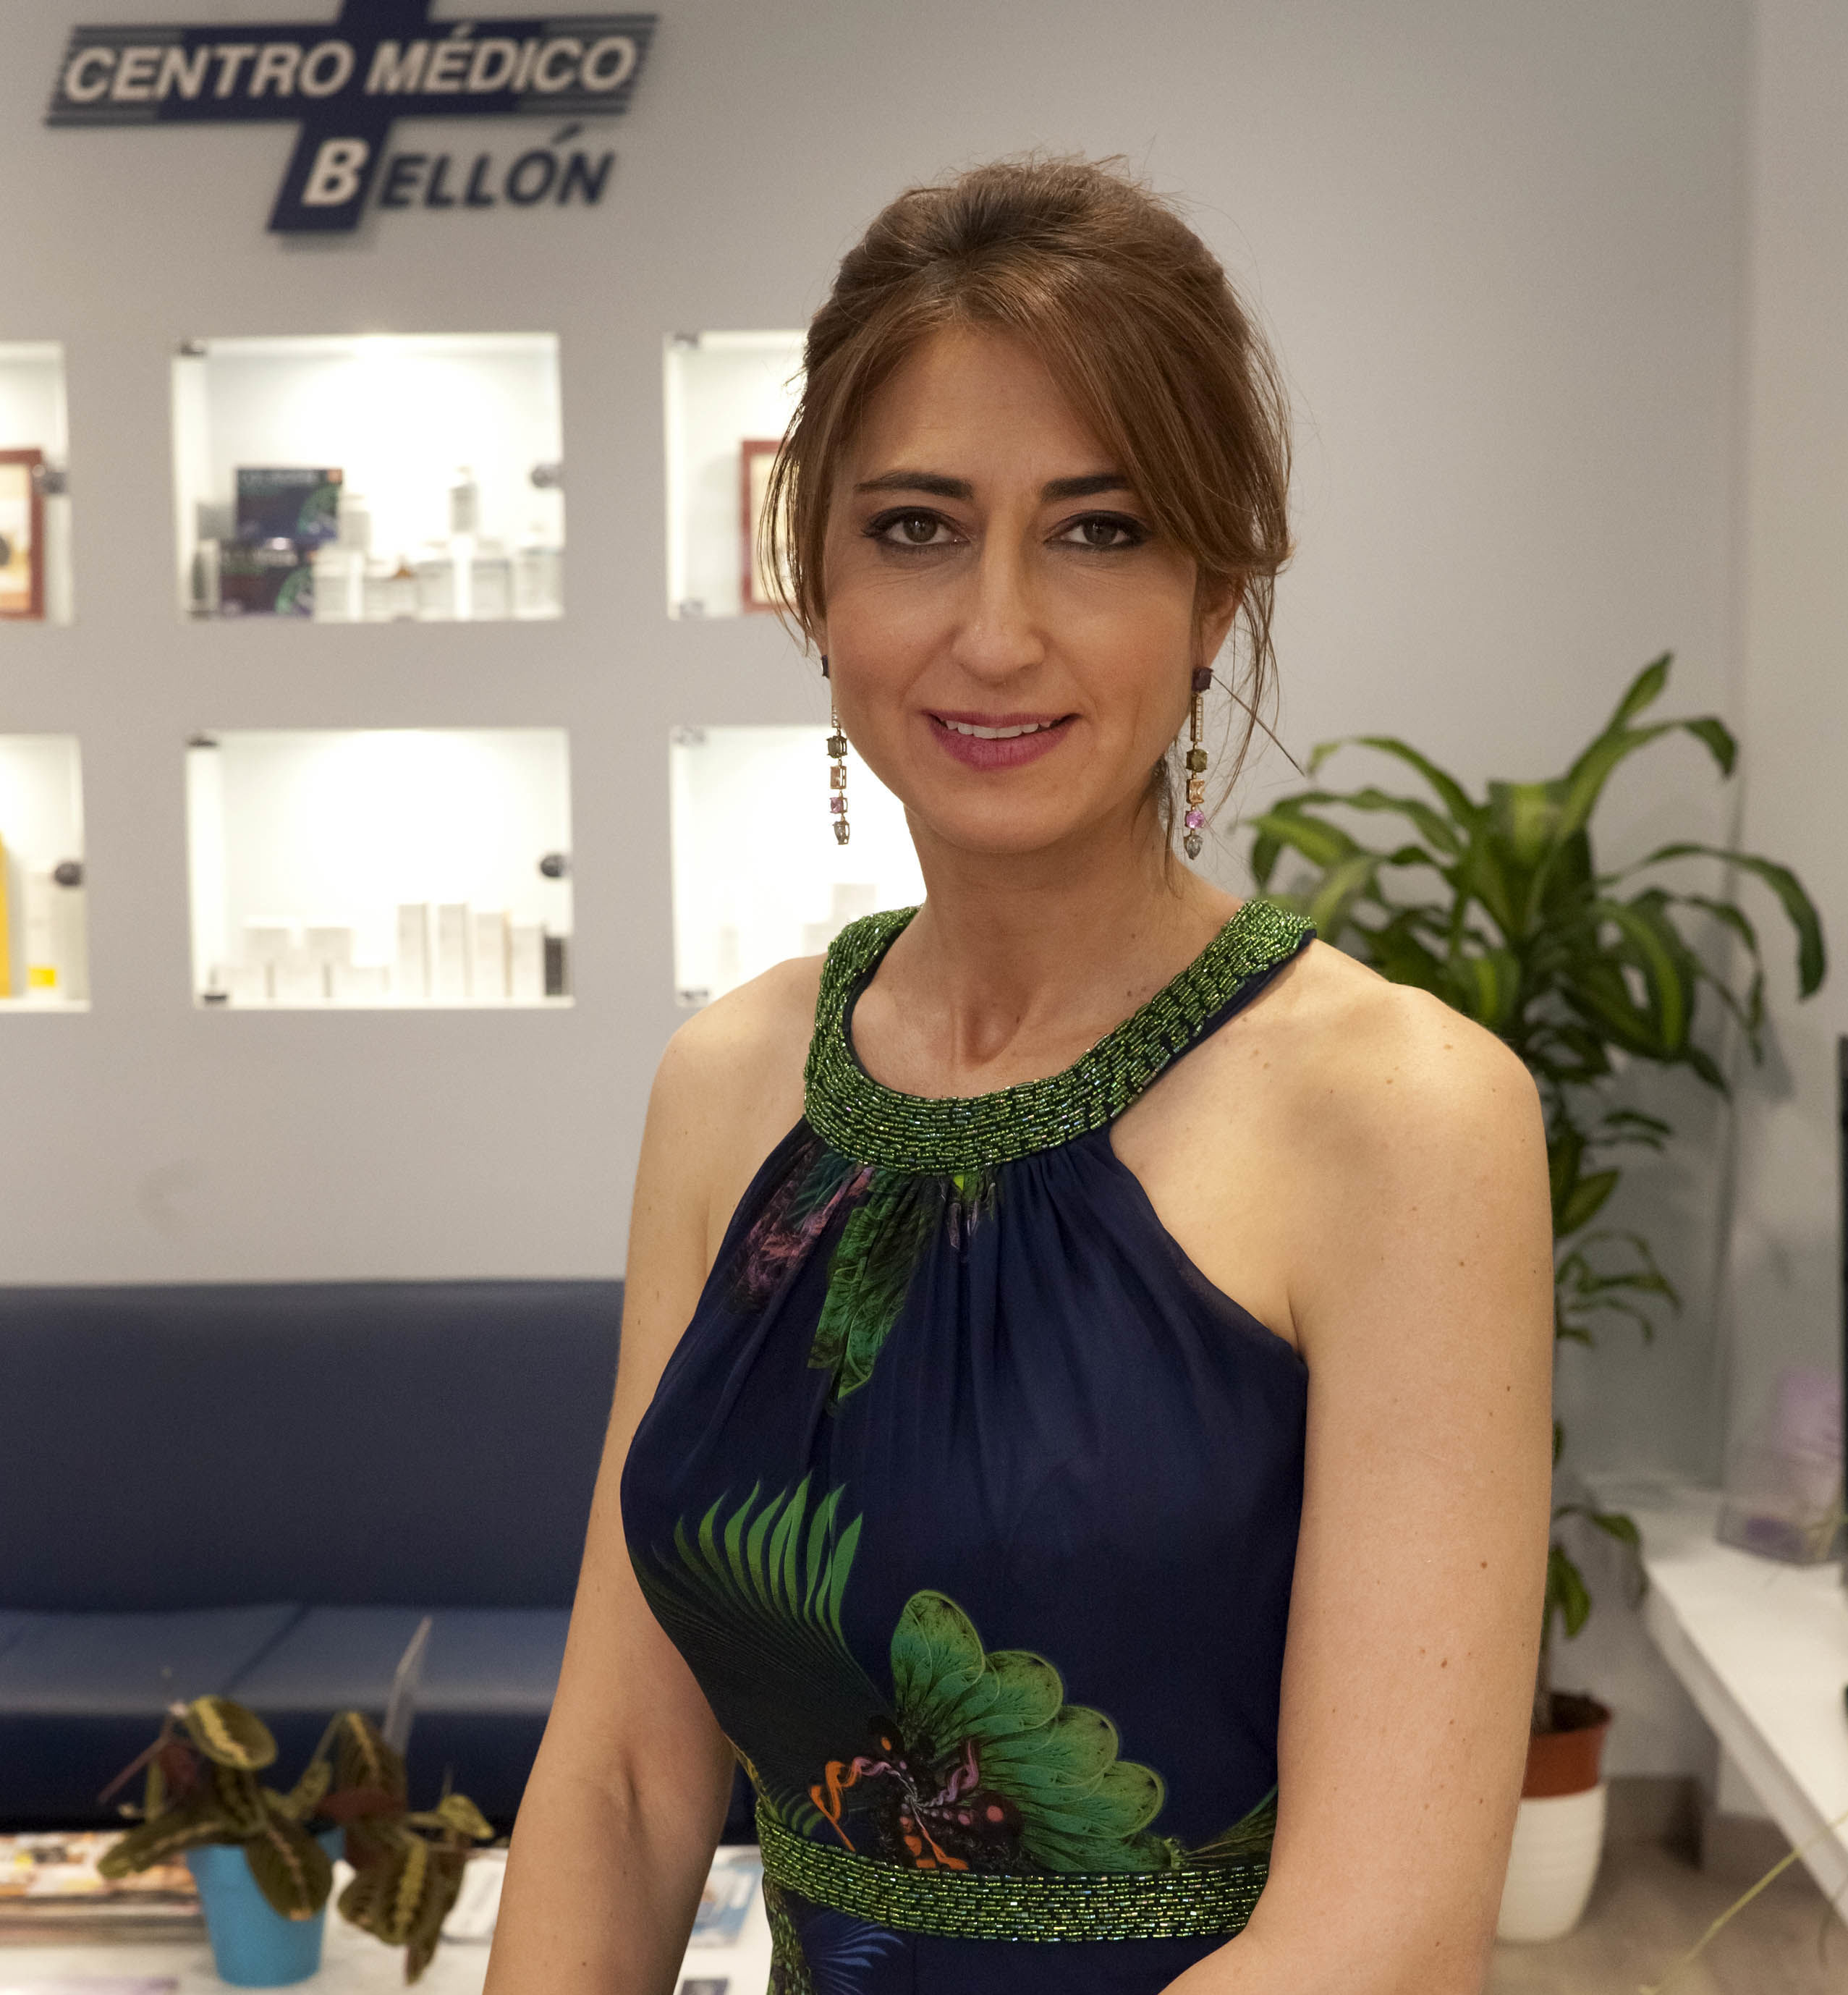 Doctora Ana Bellón